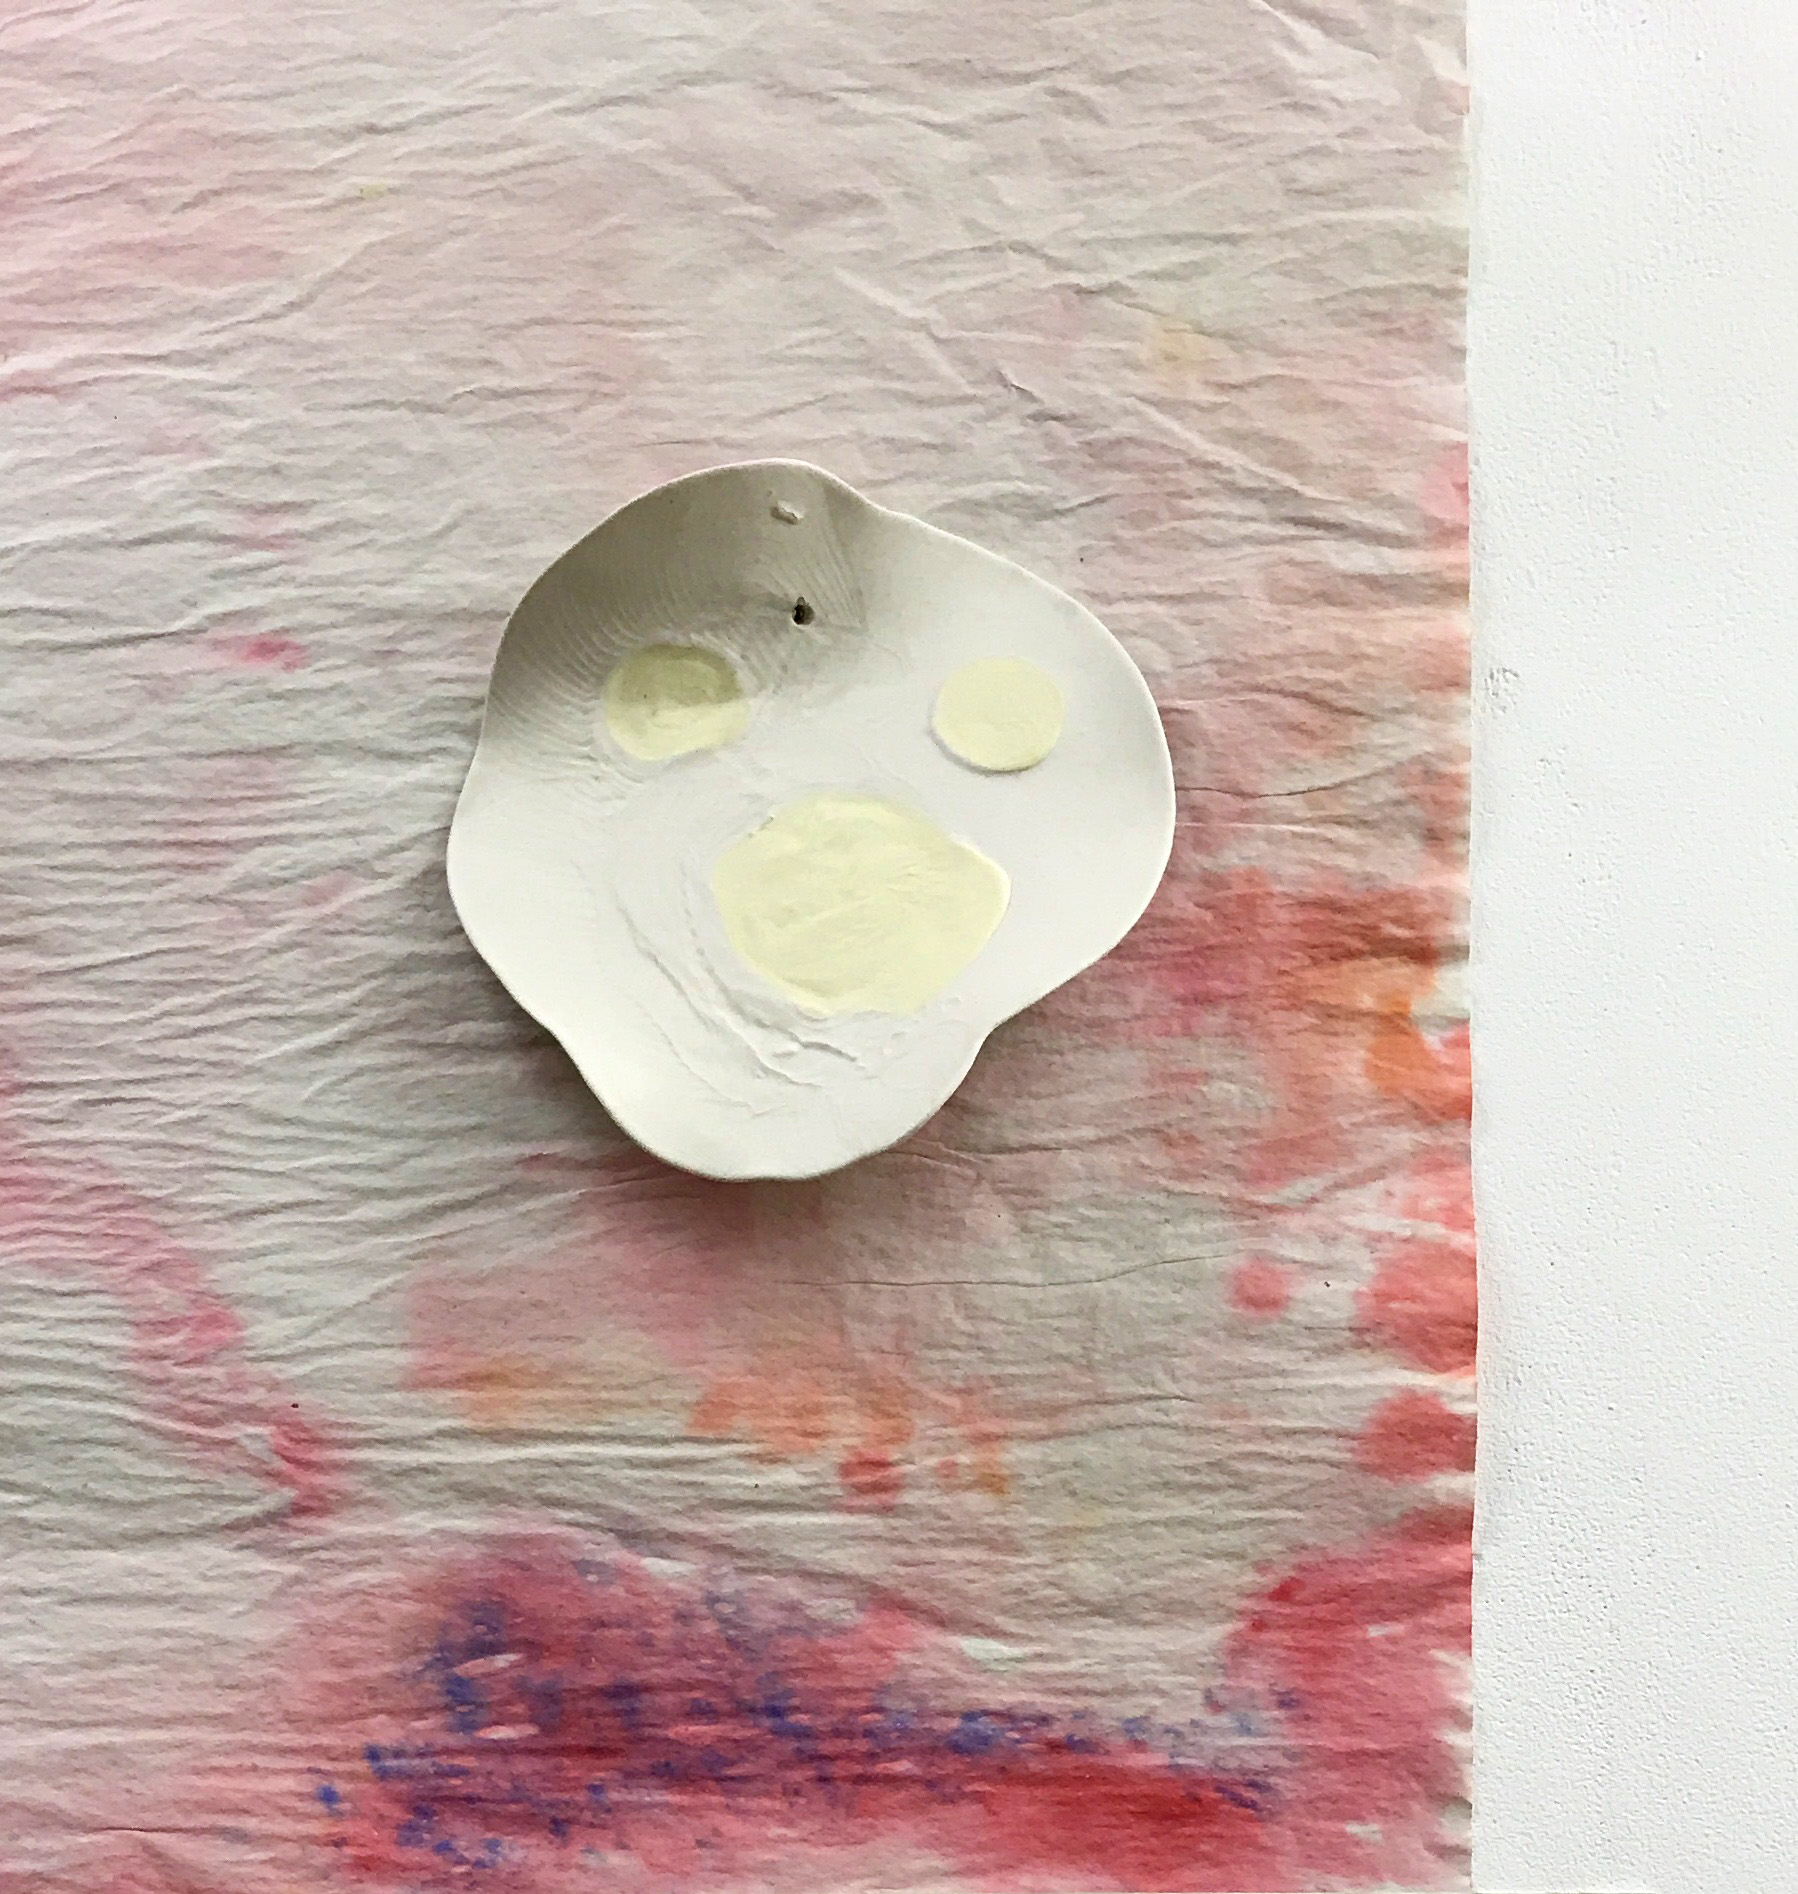 Paper, watercolour, unglazed porcelain, 2018